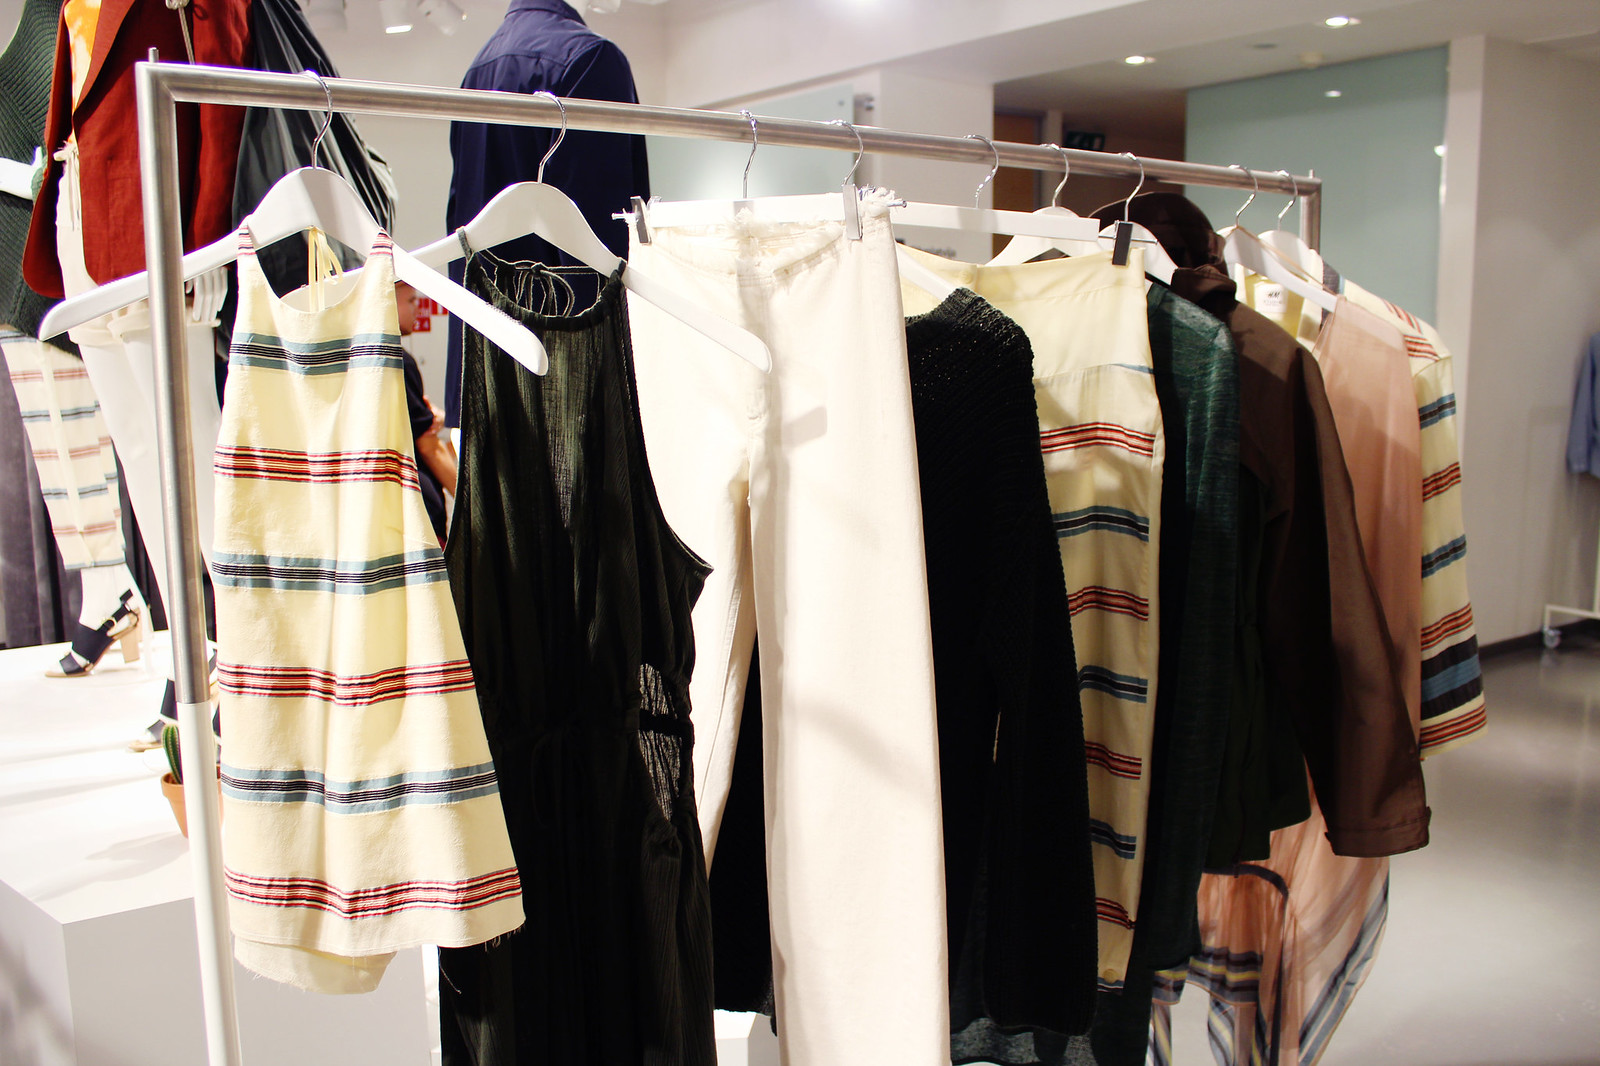 H&M Studio SS 16 collection preview for travelers